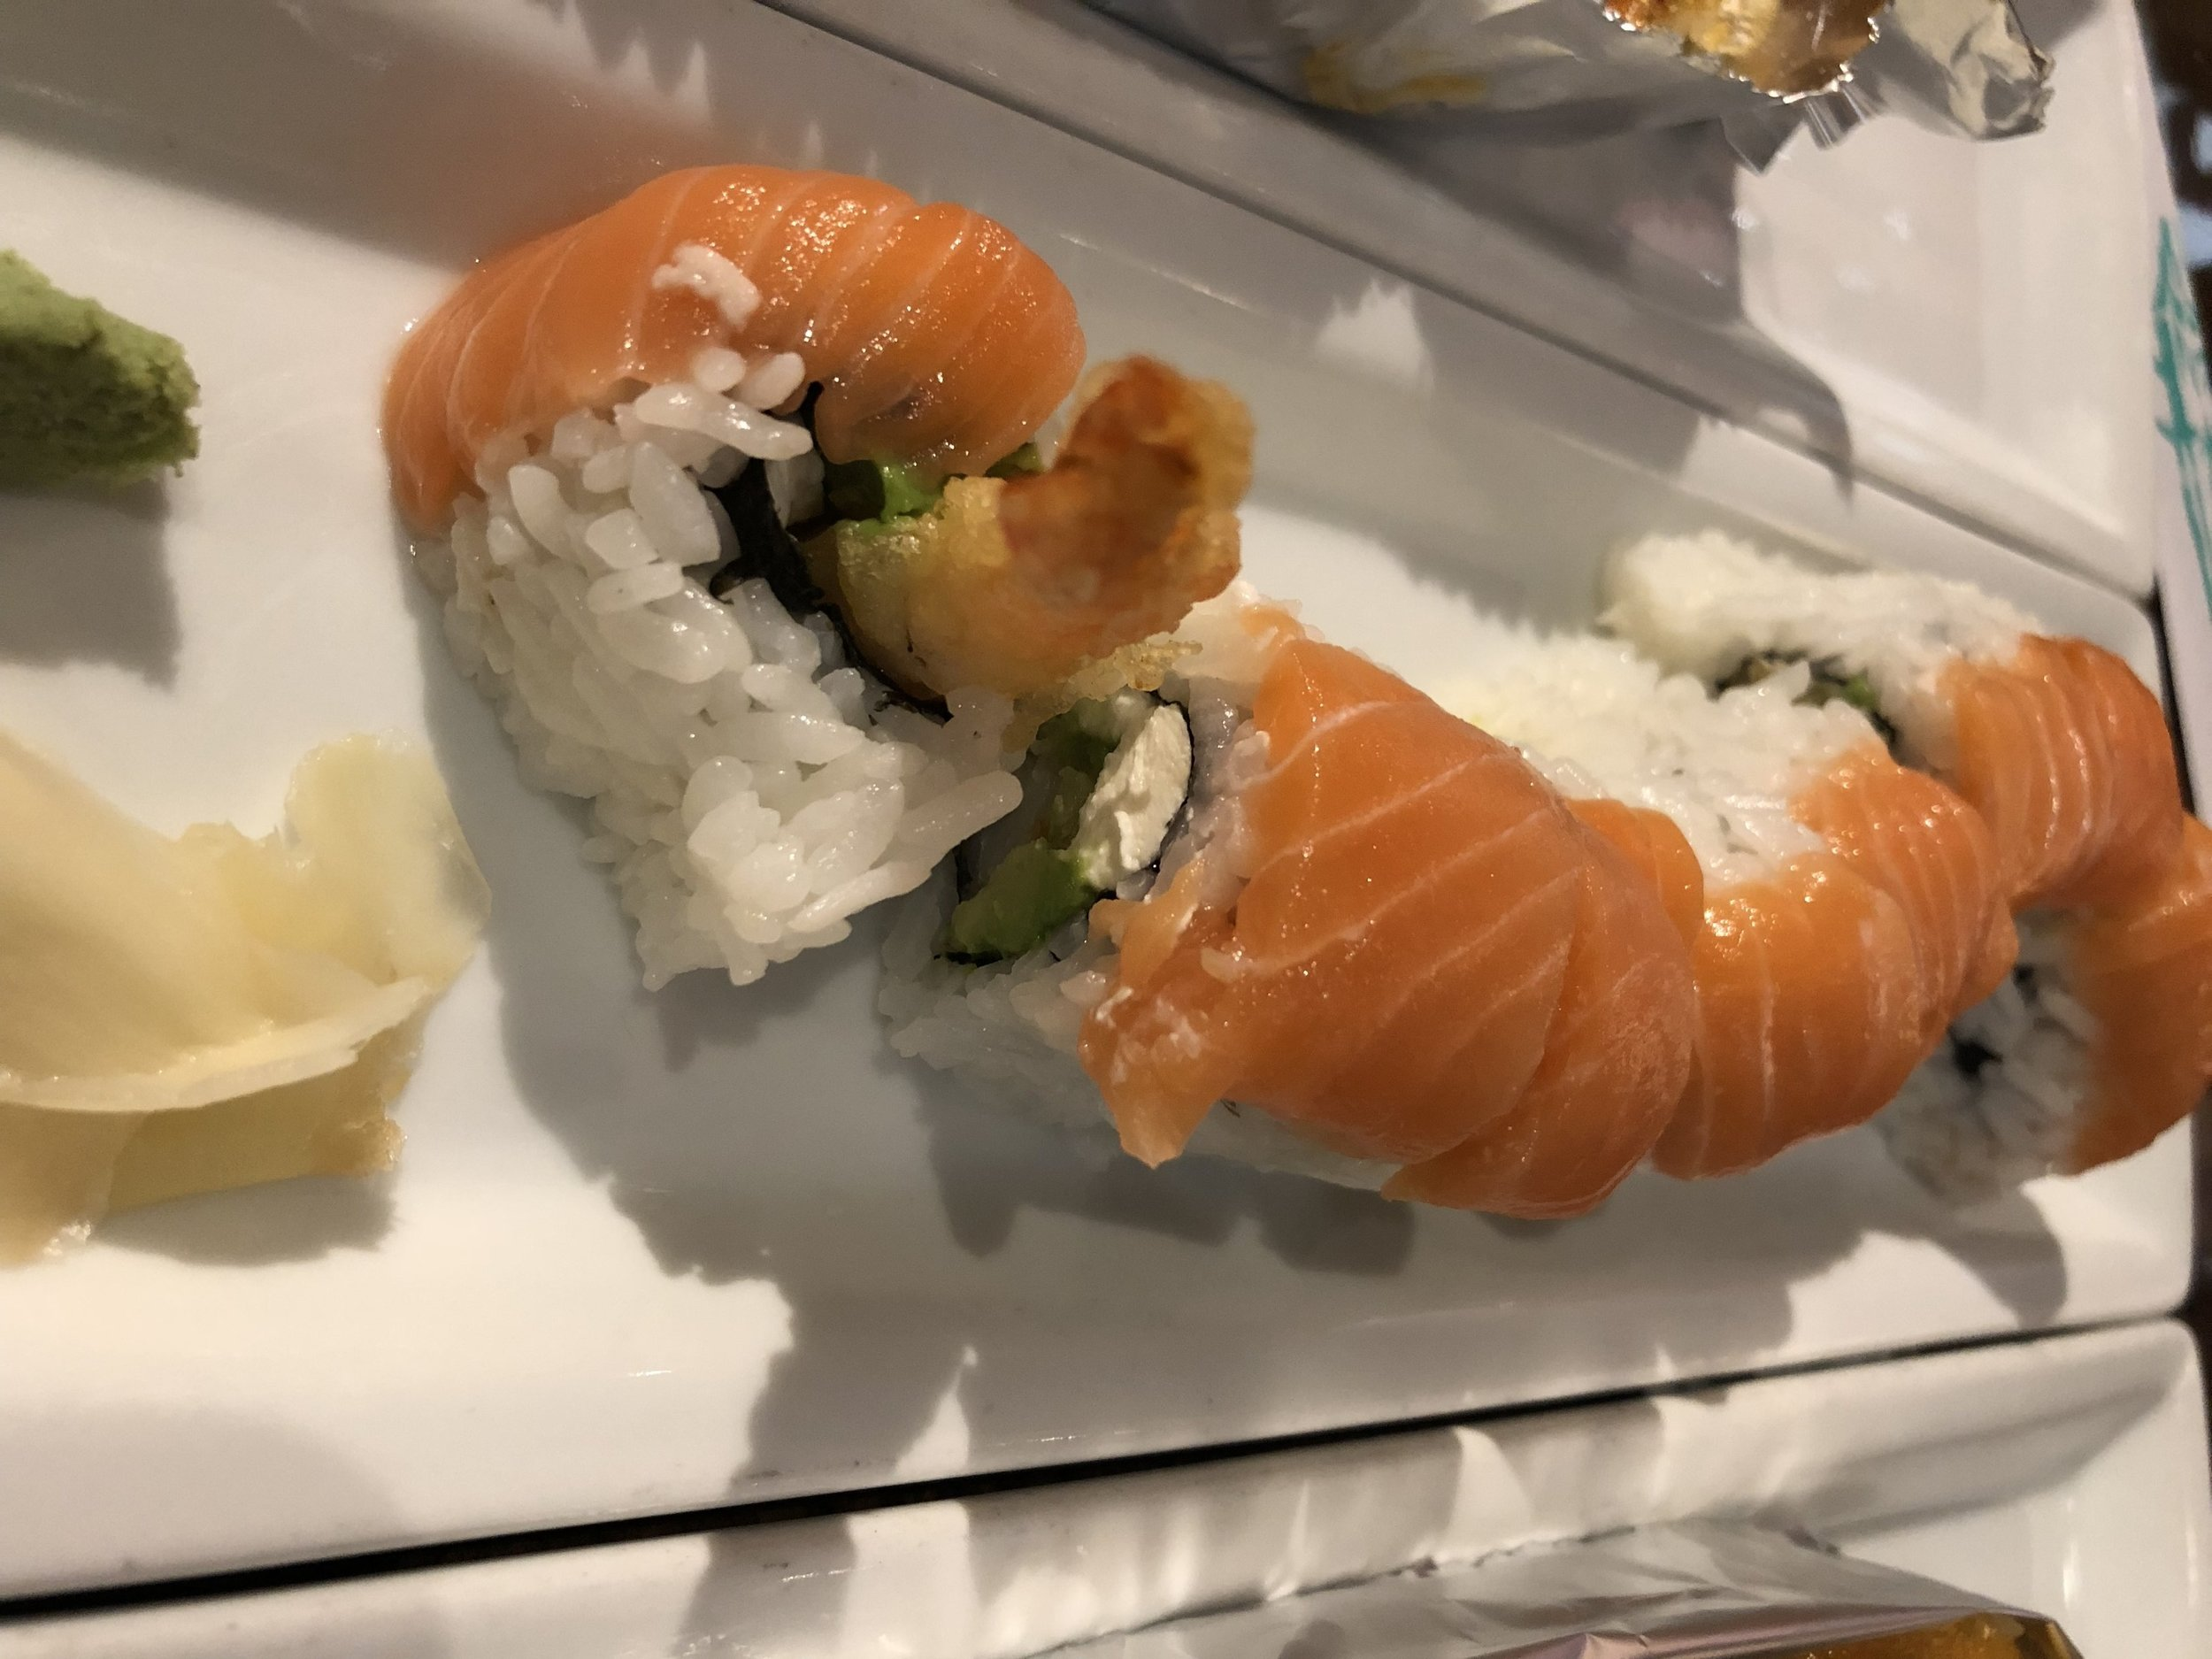 The Katie Roll